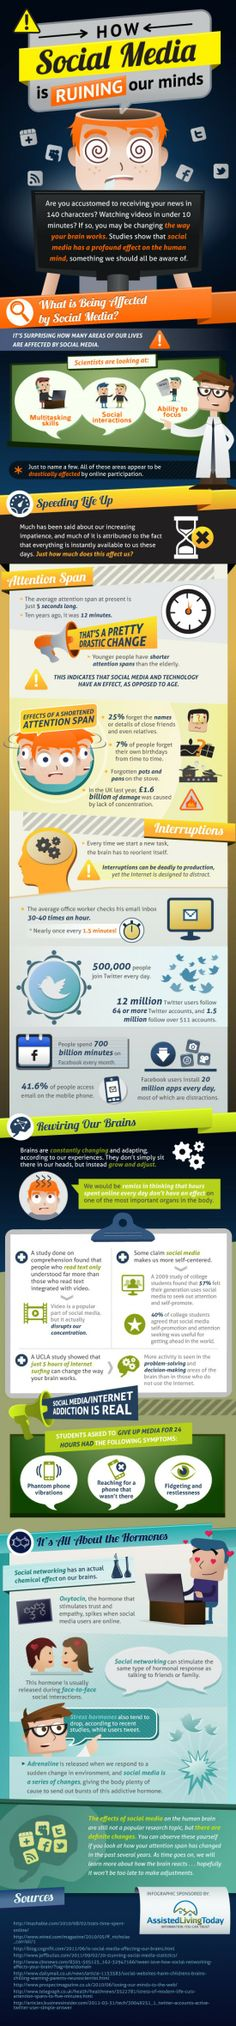 #SocialMedia is #Addicting because it changes your brain   Infographic: How Social Media Is Ruining Our Minds | Media Tapper    www.NextGenCounseling.com